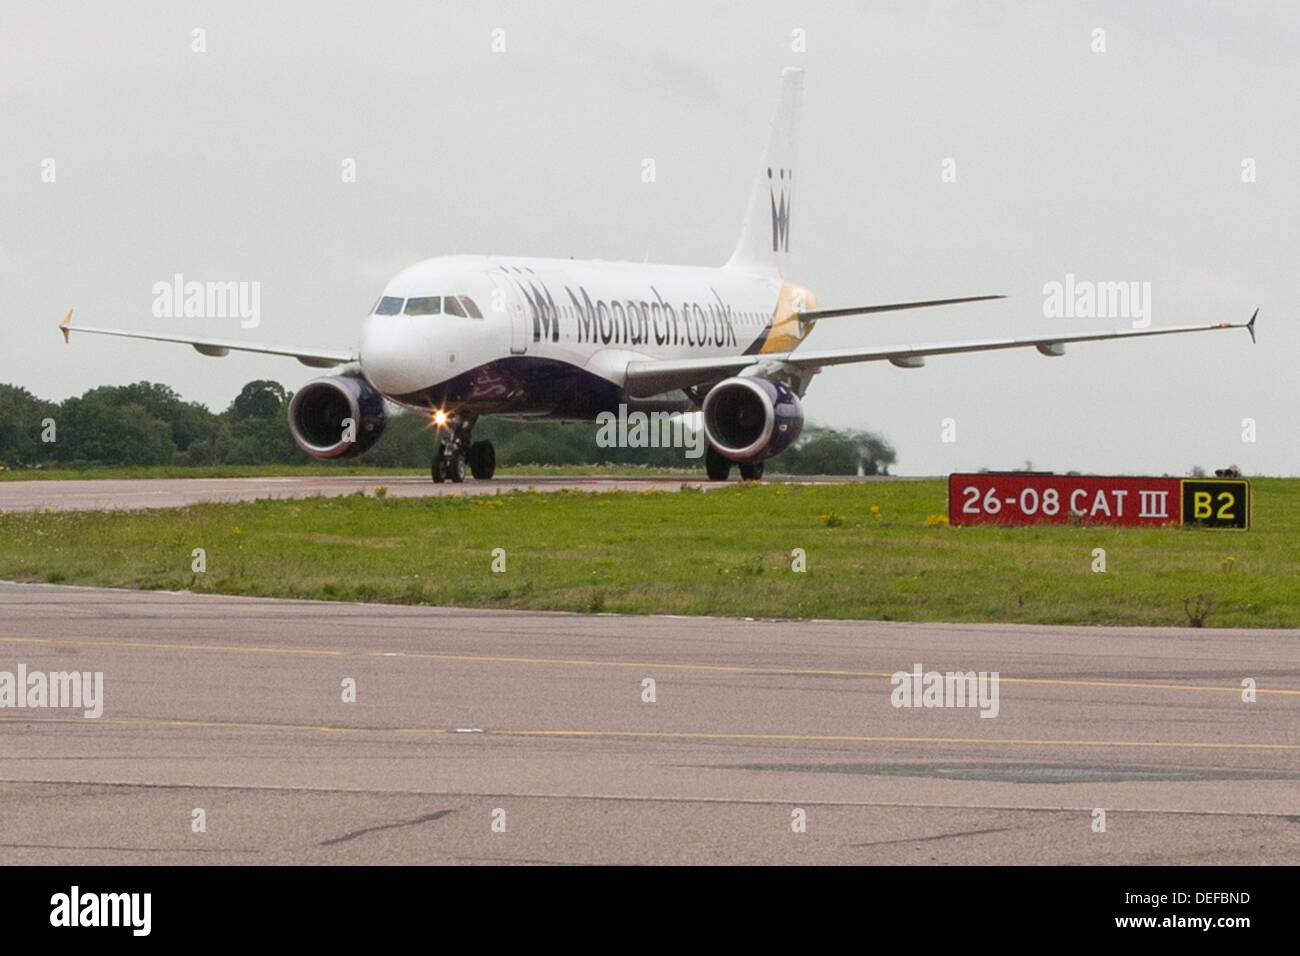 Monarch Airlines plane taxiing at Luton Airport - Stock Image